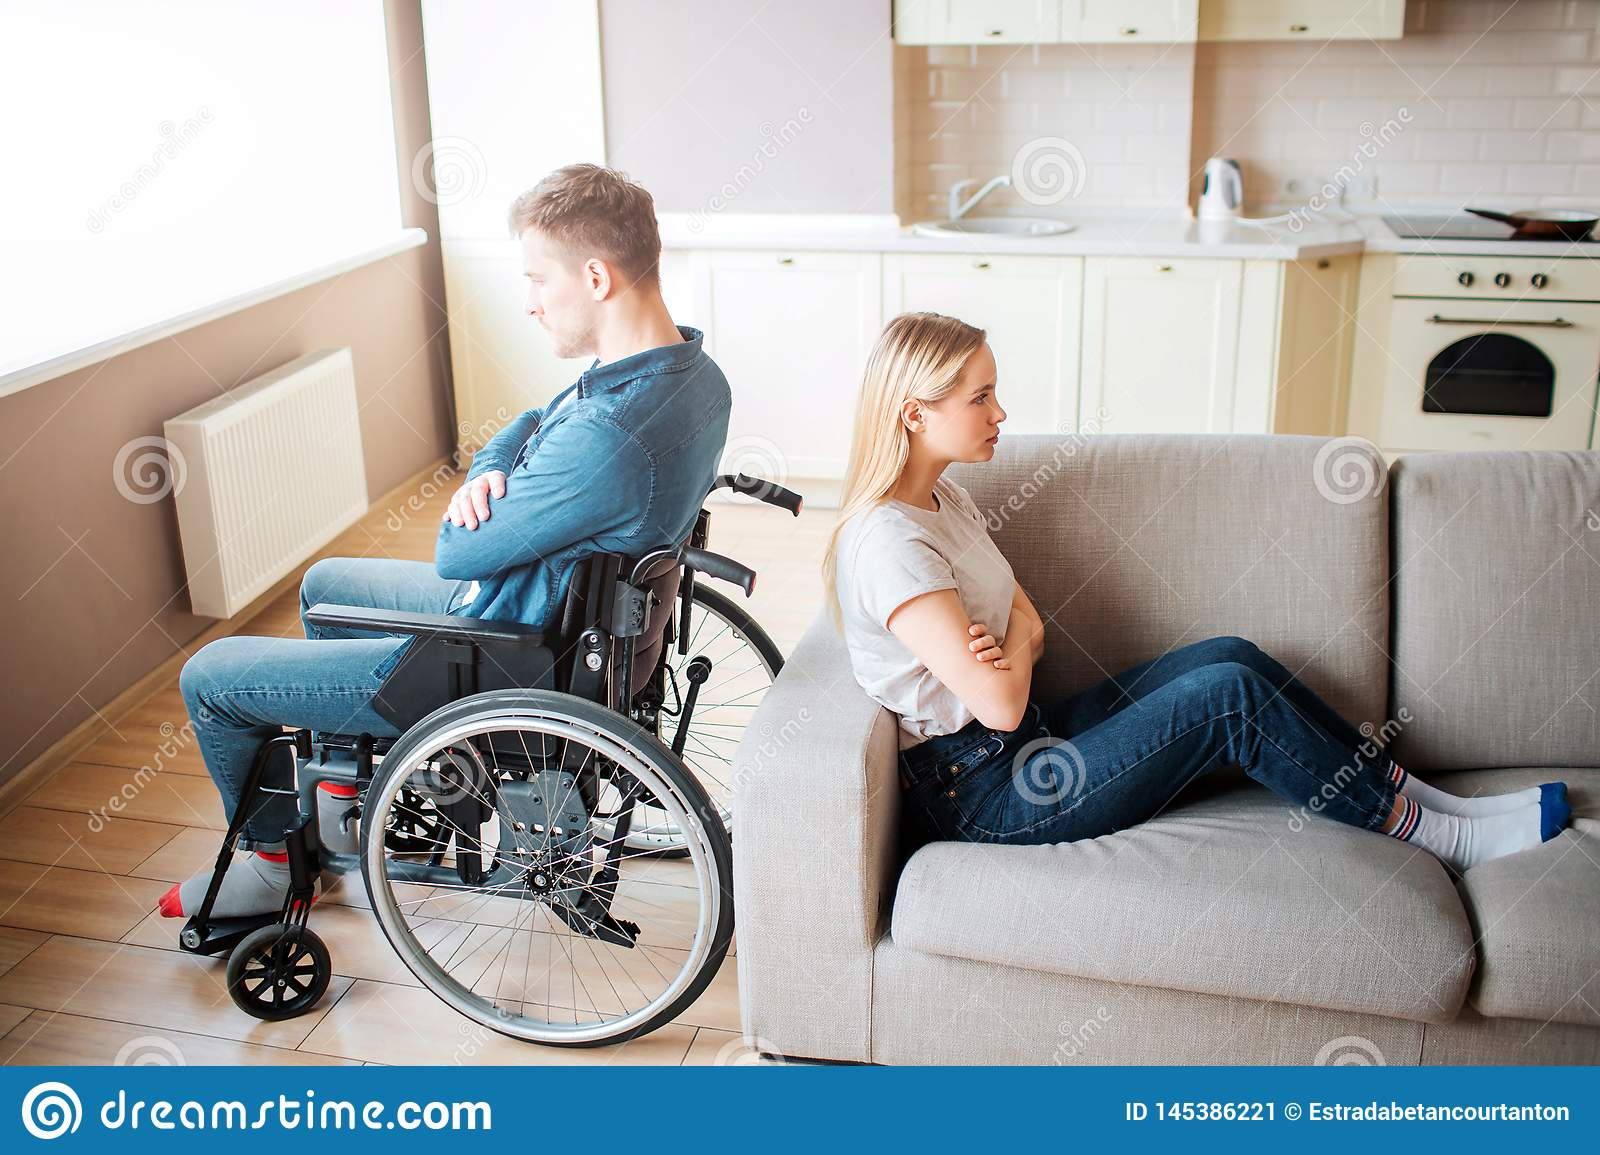 Young man with special needs and healthy woman sit back to back in room. Argue and quirrel. Worker with disability and